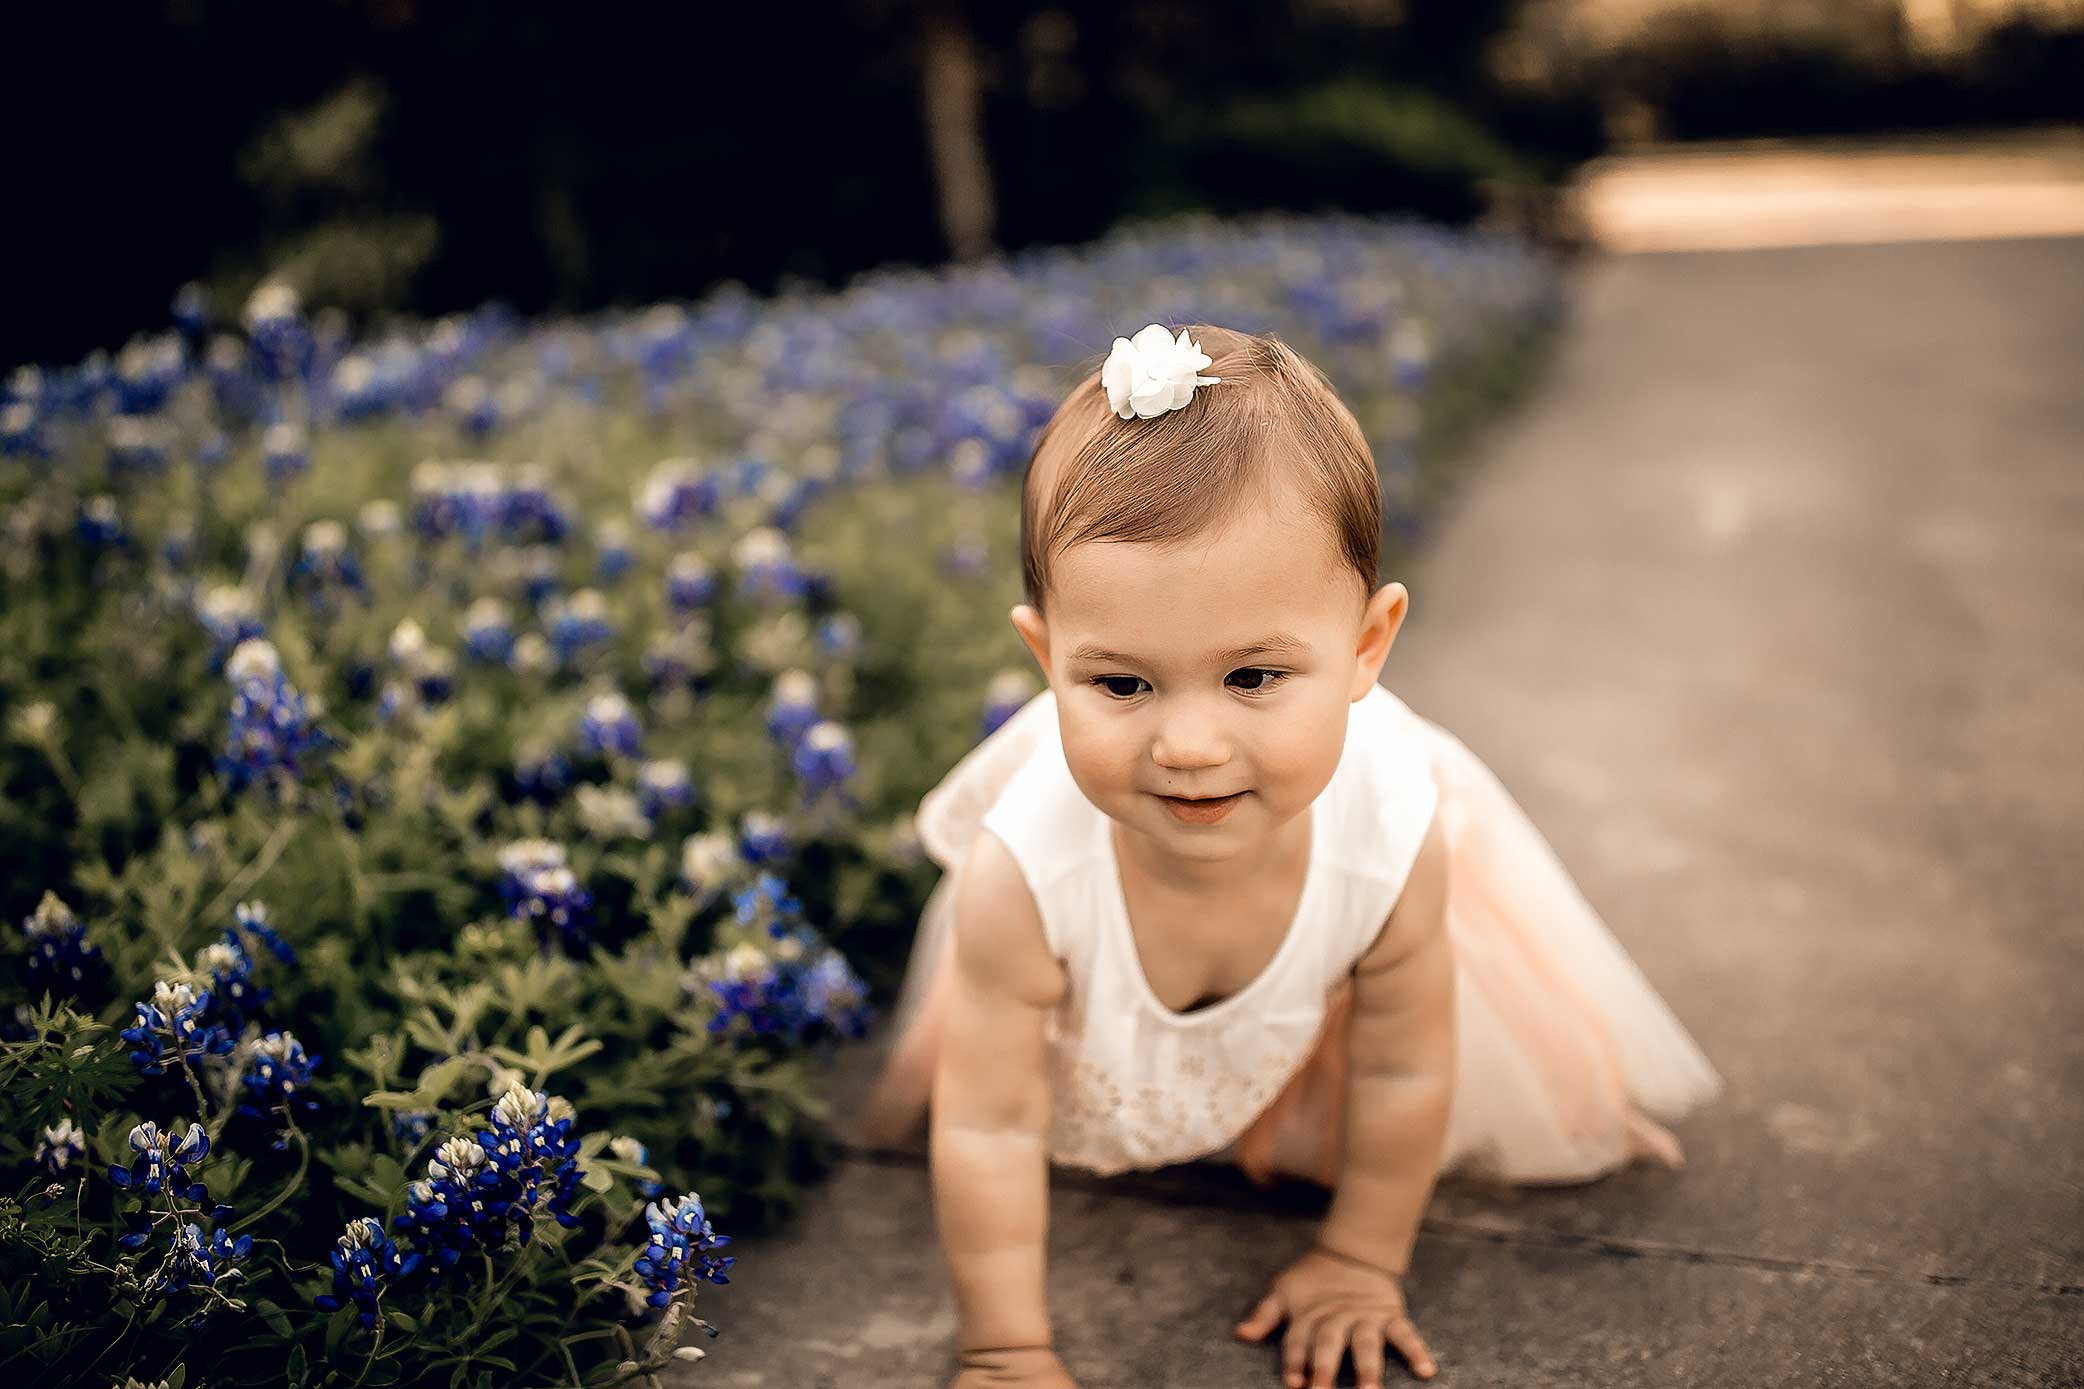 shelby-schiller-photography-toddler-pink-dress-and-bluebonnets.jpg